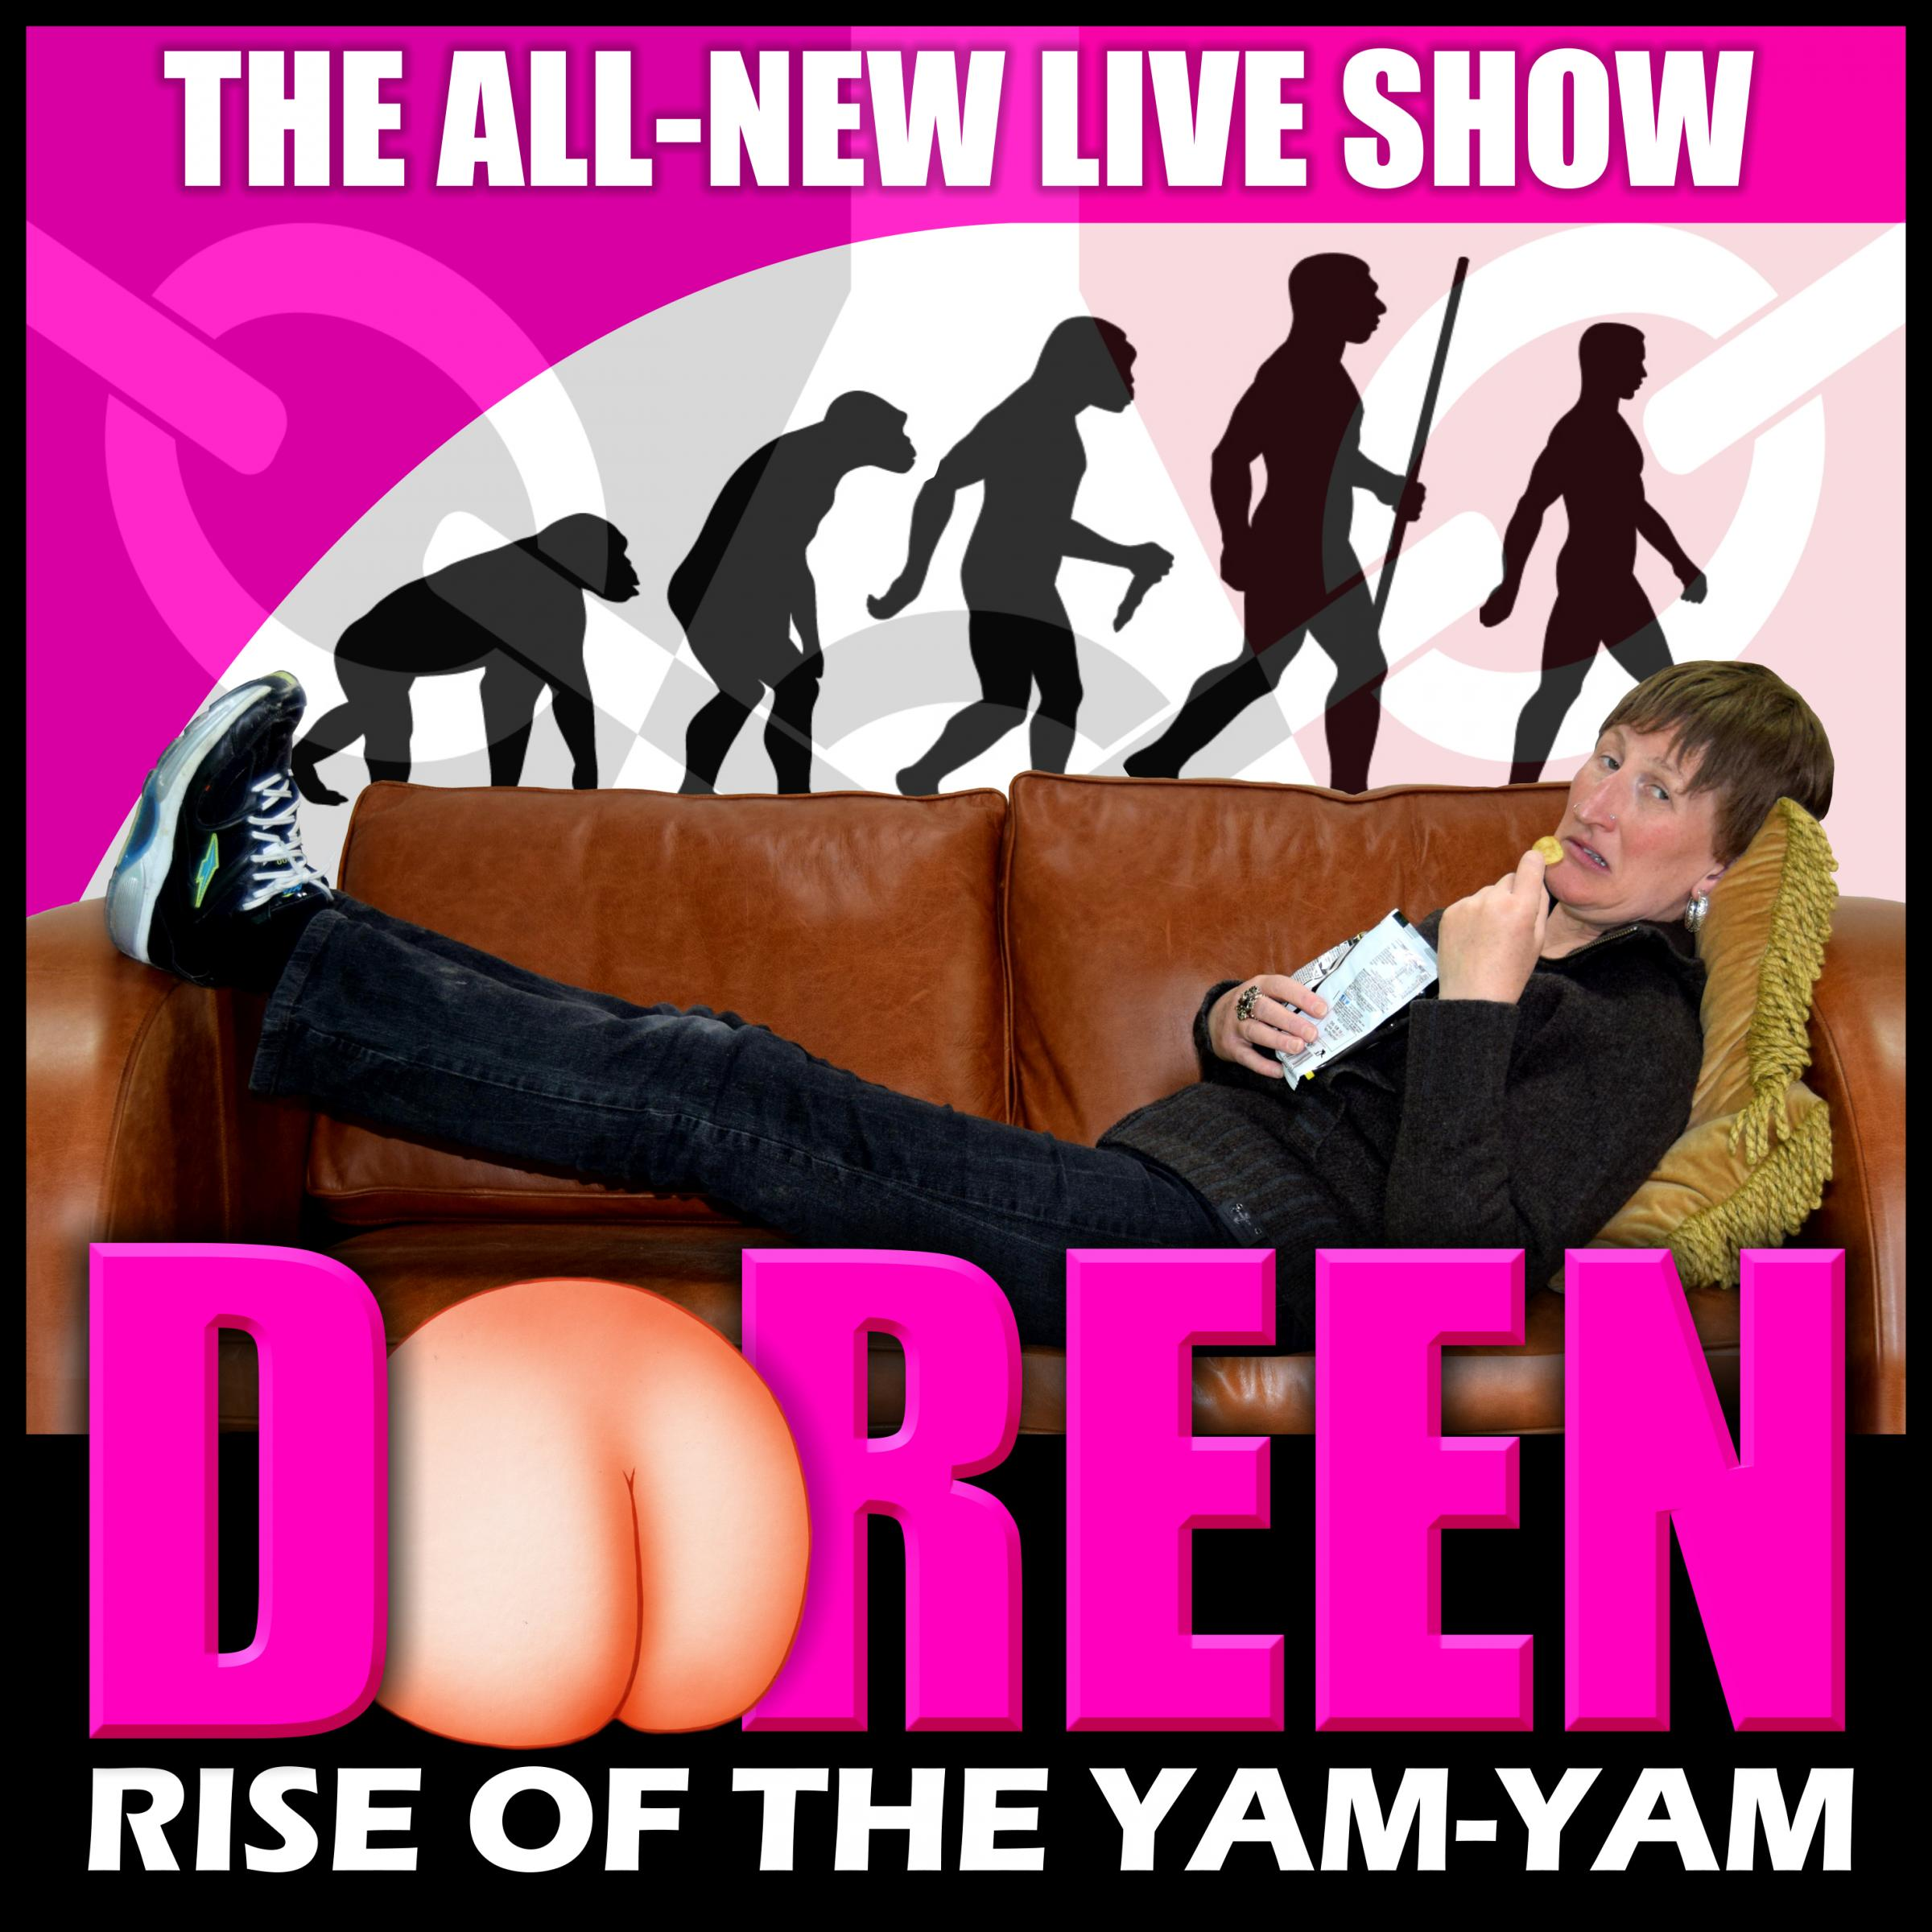 Doreen - Rise of the Yam- Yam